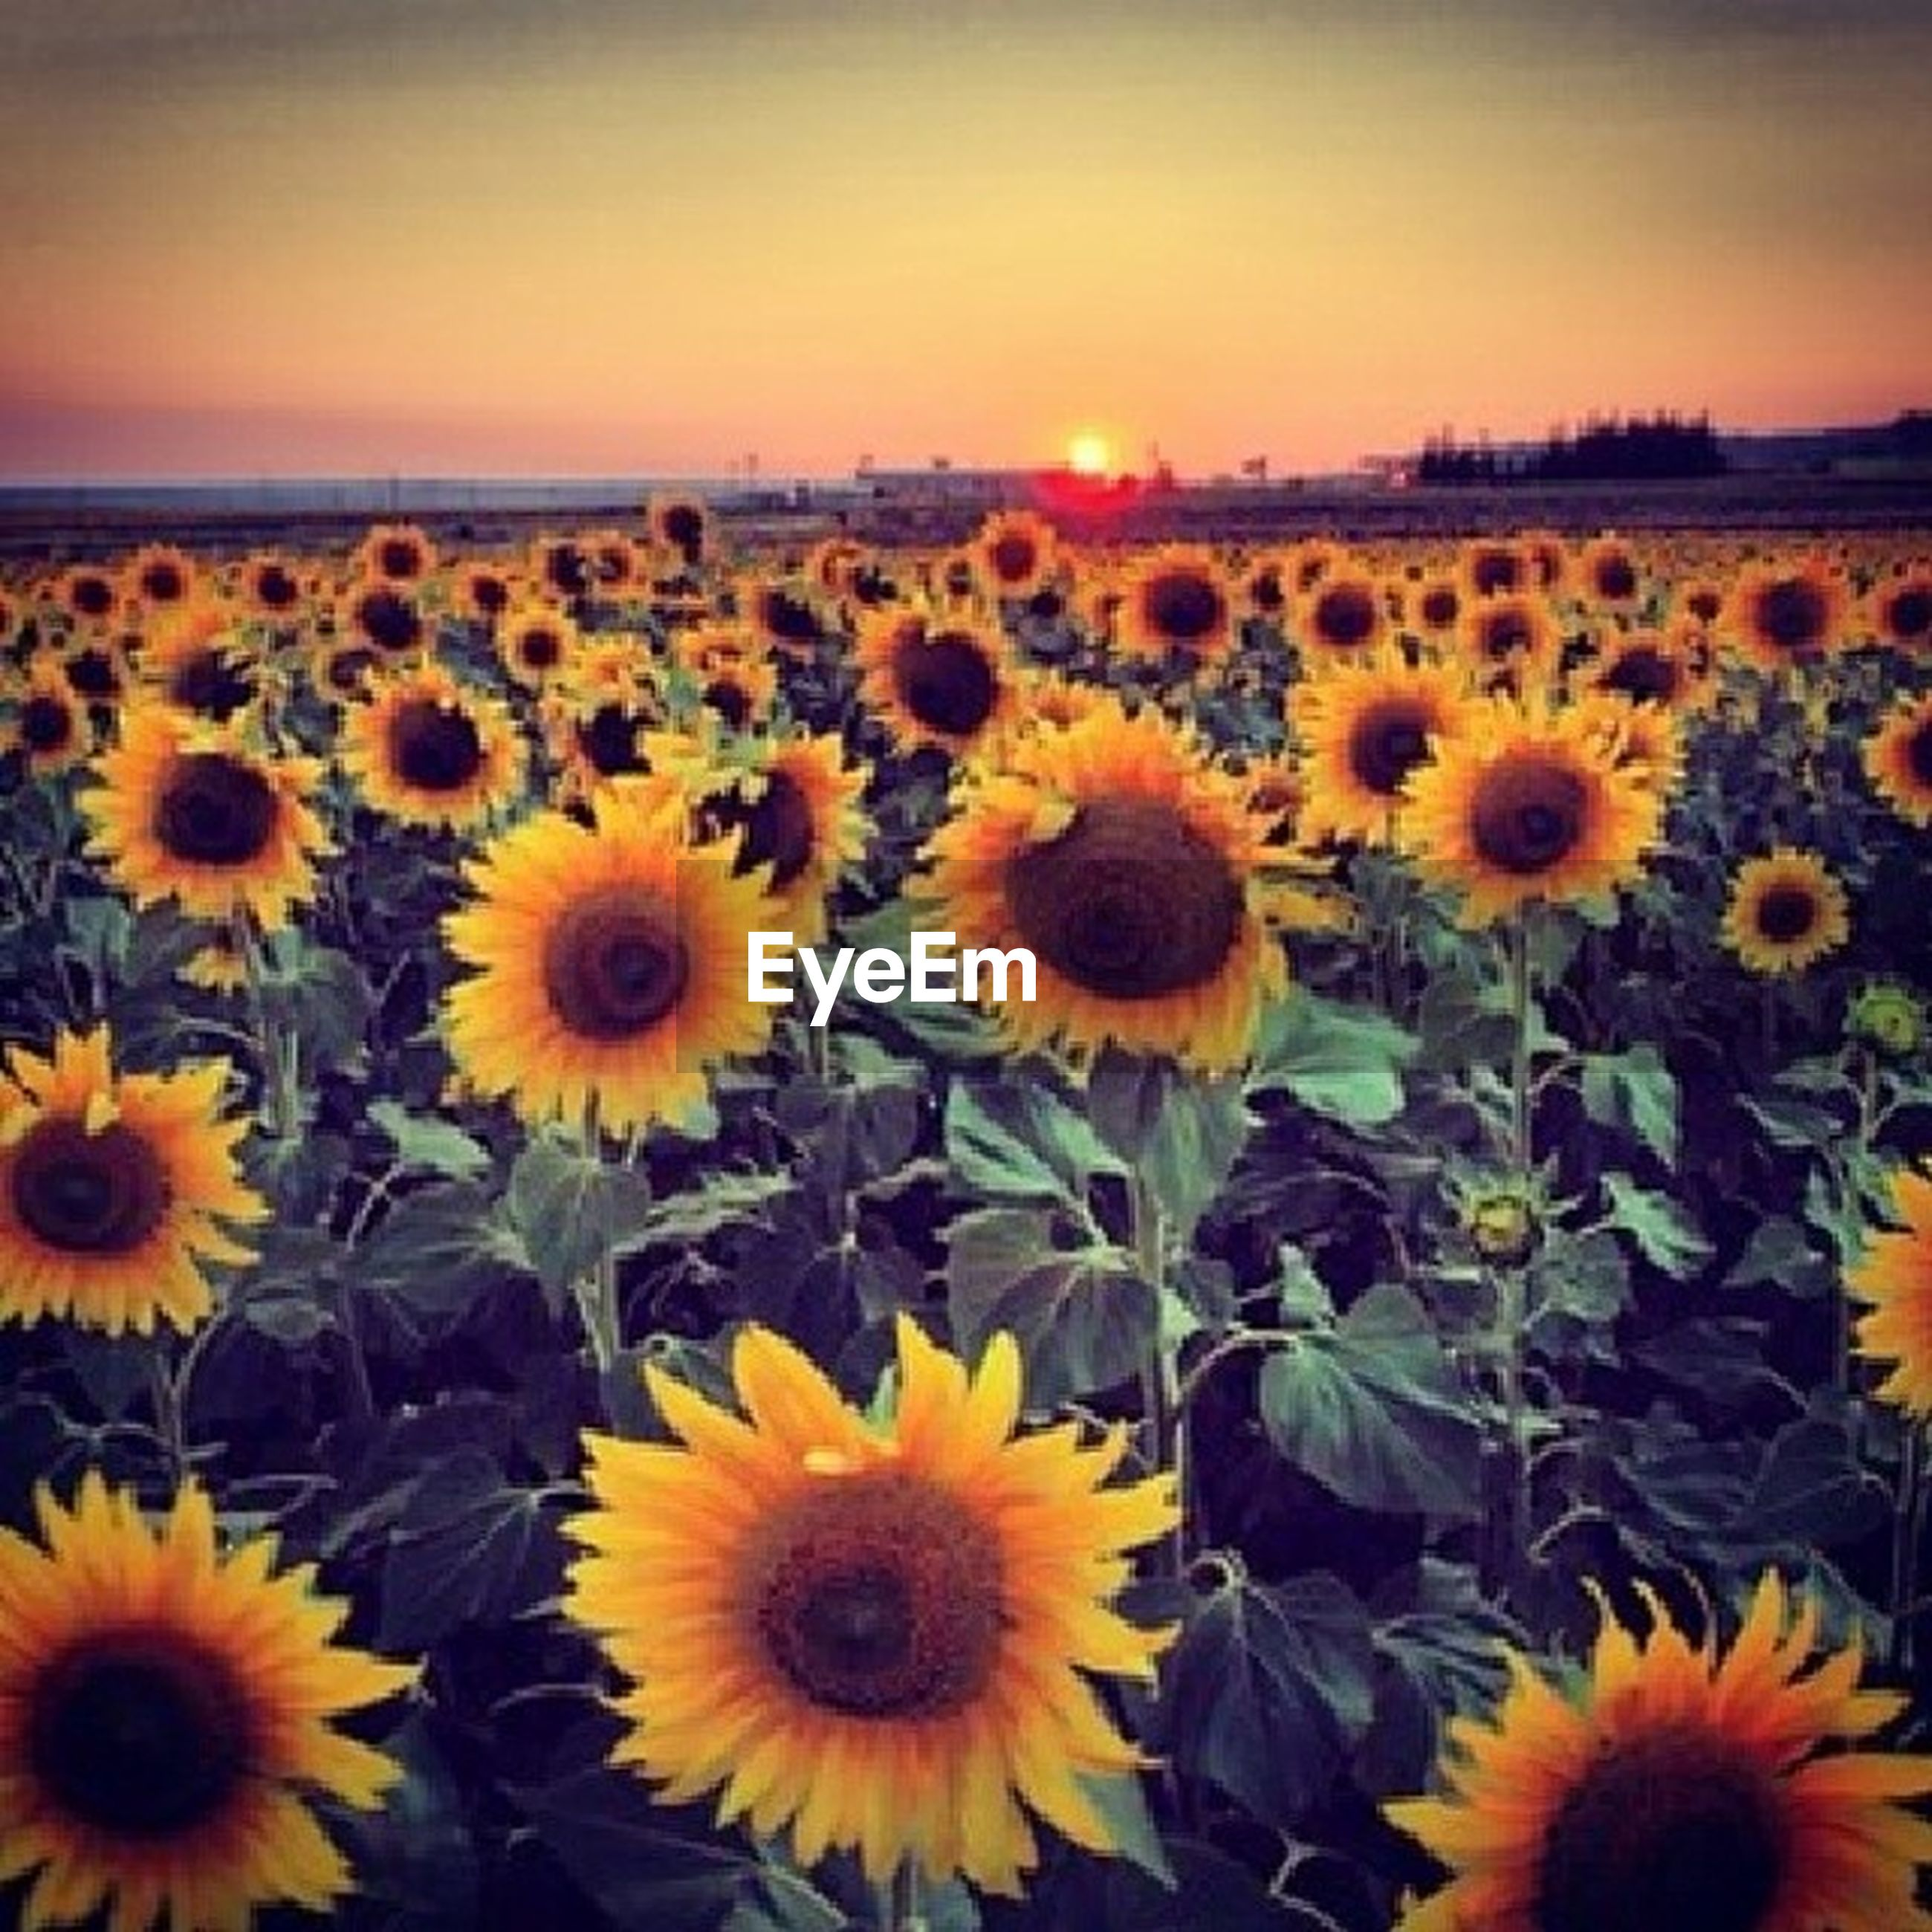 flower, yellow, freshness, sunflower, growth, beauty in nature, fragility, petal, flower head, field, nature, blooming, plant, rural scene, agriculture, abundance, landscape, tranquil scene, sky, tranquility